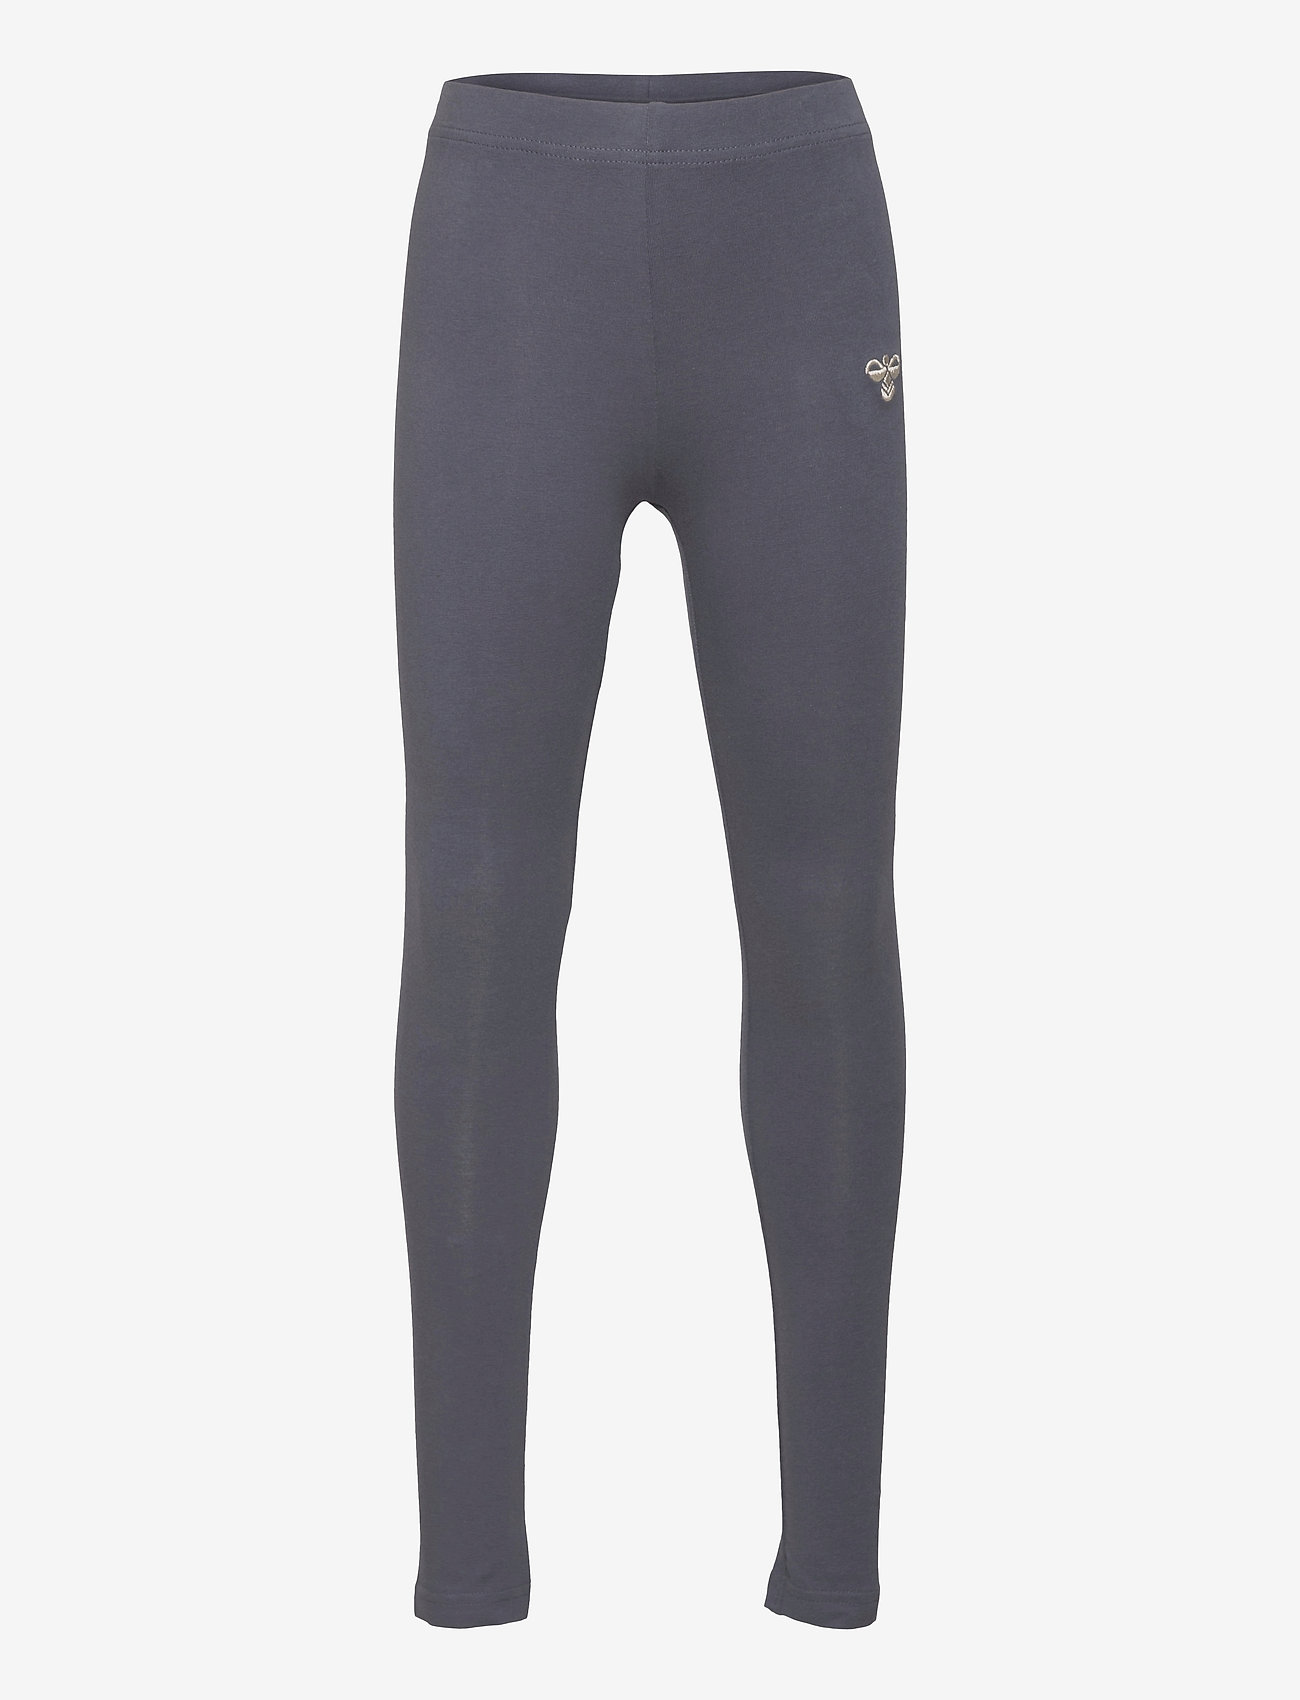 Hummel - hmlONZE TIGHTS - leggings - ombre blue - 0